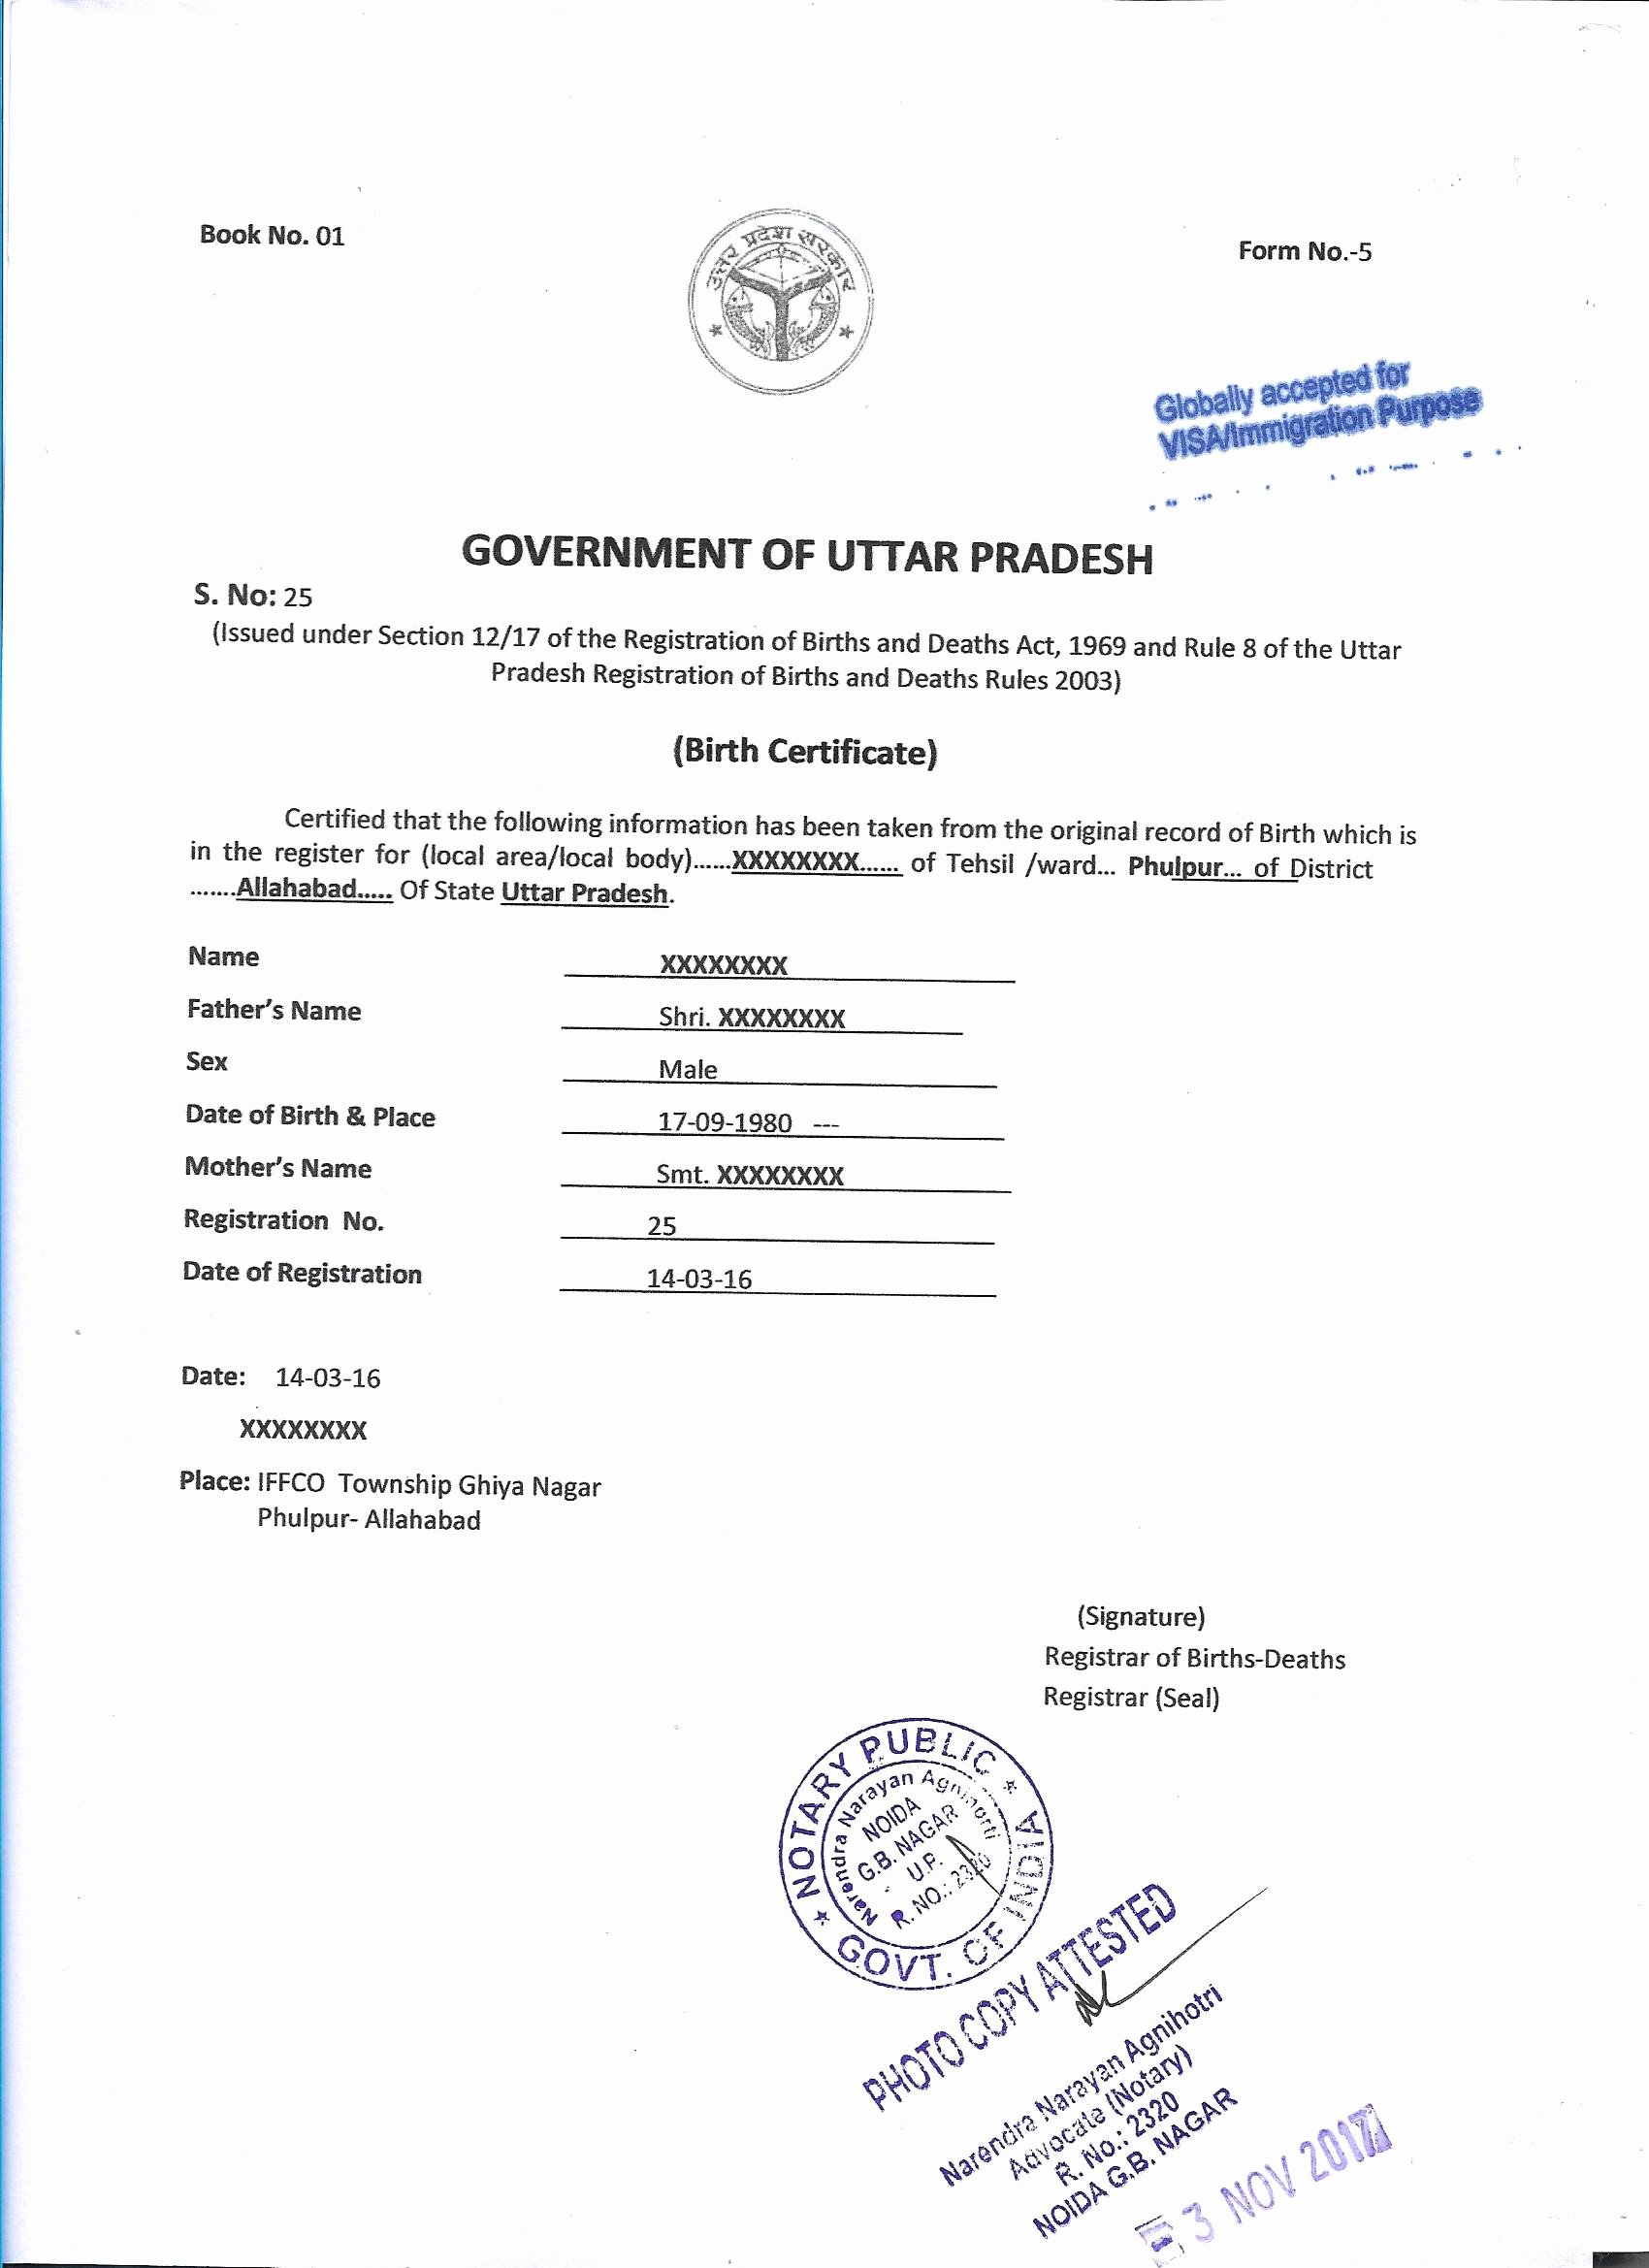 Death Certificate Translation Template Best Of Death Certificate Translation – Certificate Translation